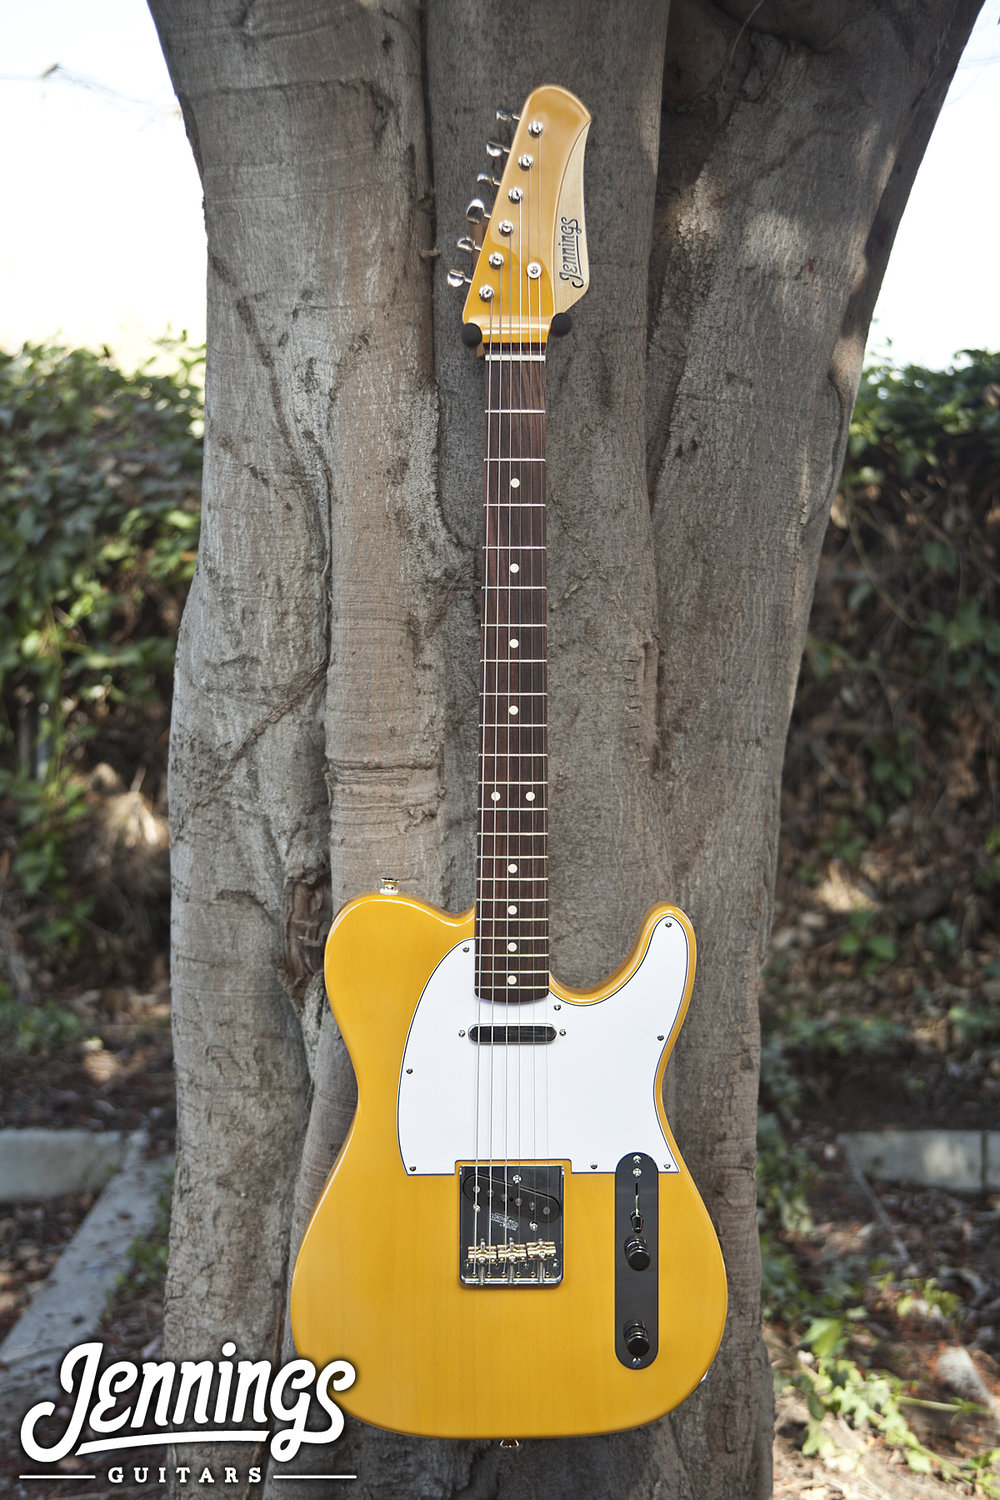 T-style- Butterscoth w/ Mcnelly A5 Pickups